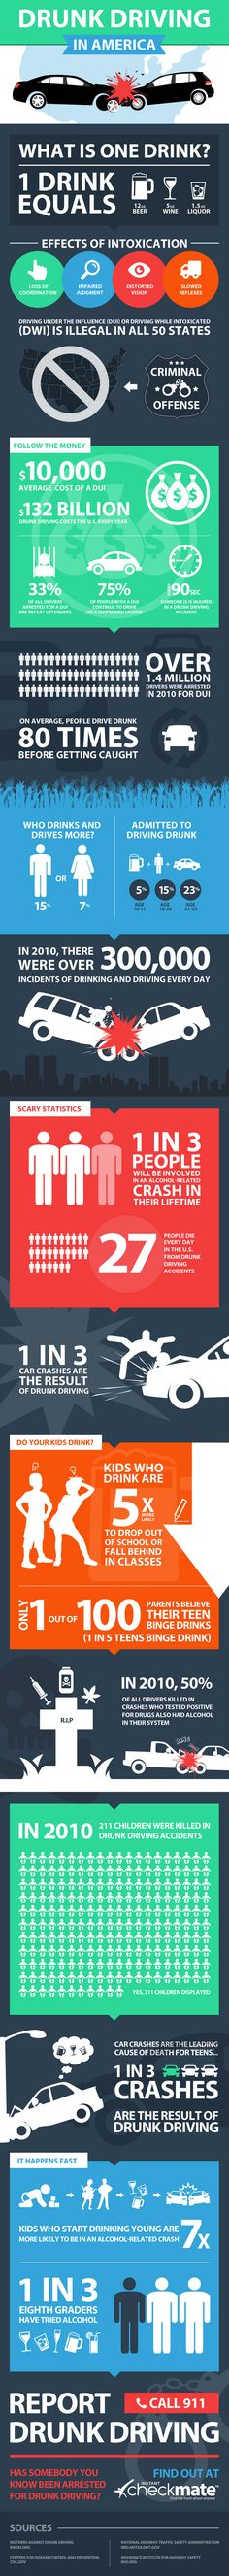 Drunk Driving in America, infographic. We need to put an end to drunk driving! I know way too many people who have been impact themselves or know someone who has been impacted by a drunk driver!